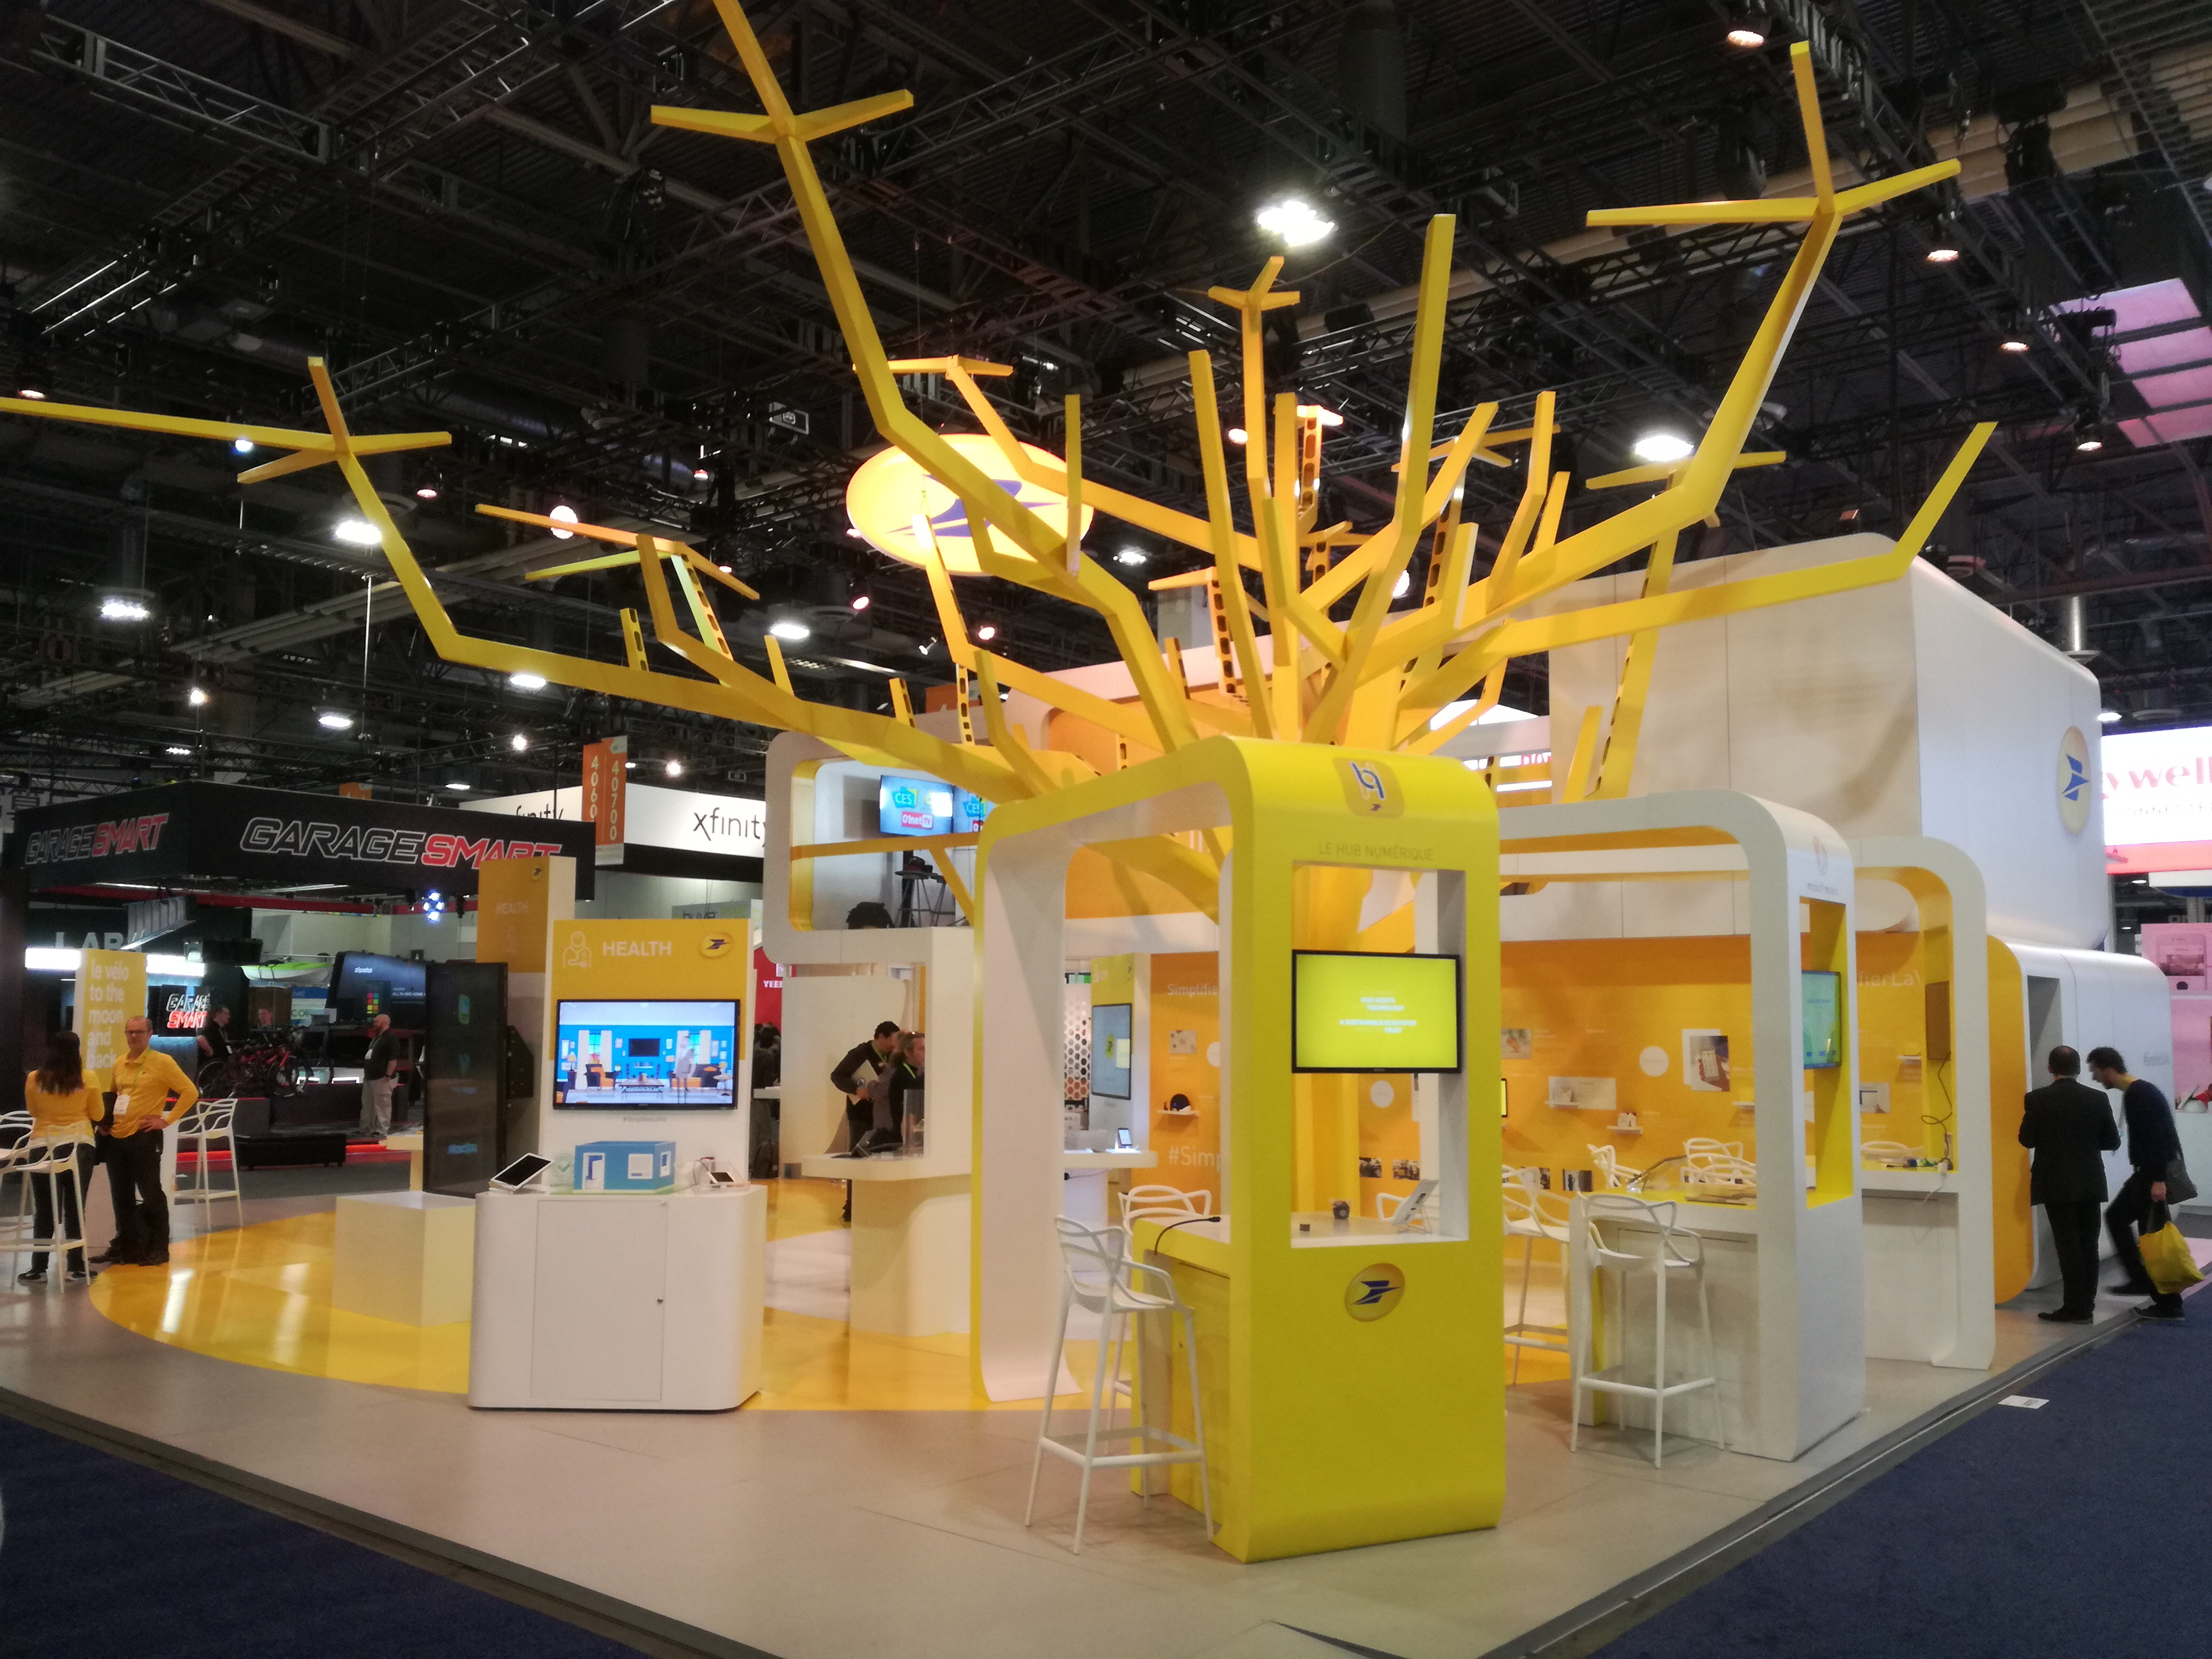 The La Poste stand provided an immersive experience for visitors, showcasing the company's services: after embarking on an original and interactive journey, visitors found themselves at the heart of La Poste's service offering ecosystem.